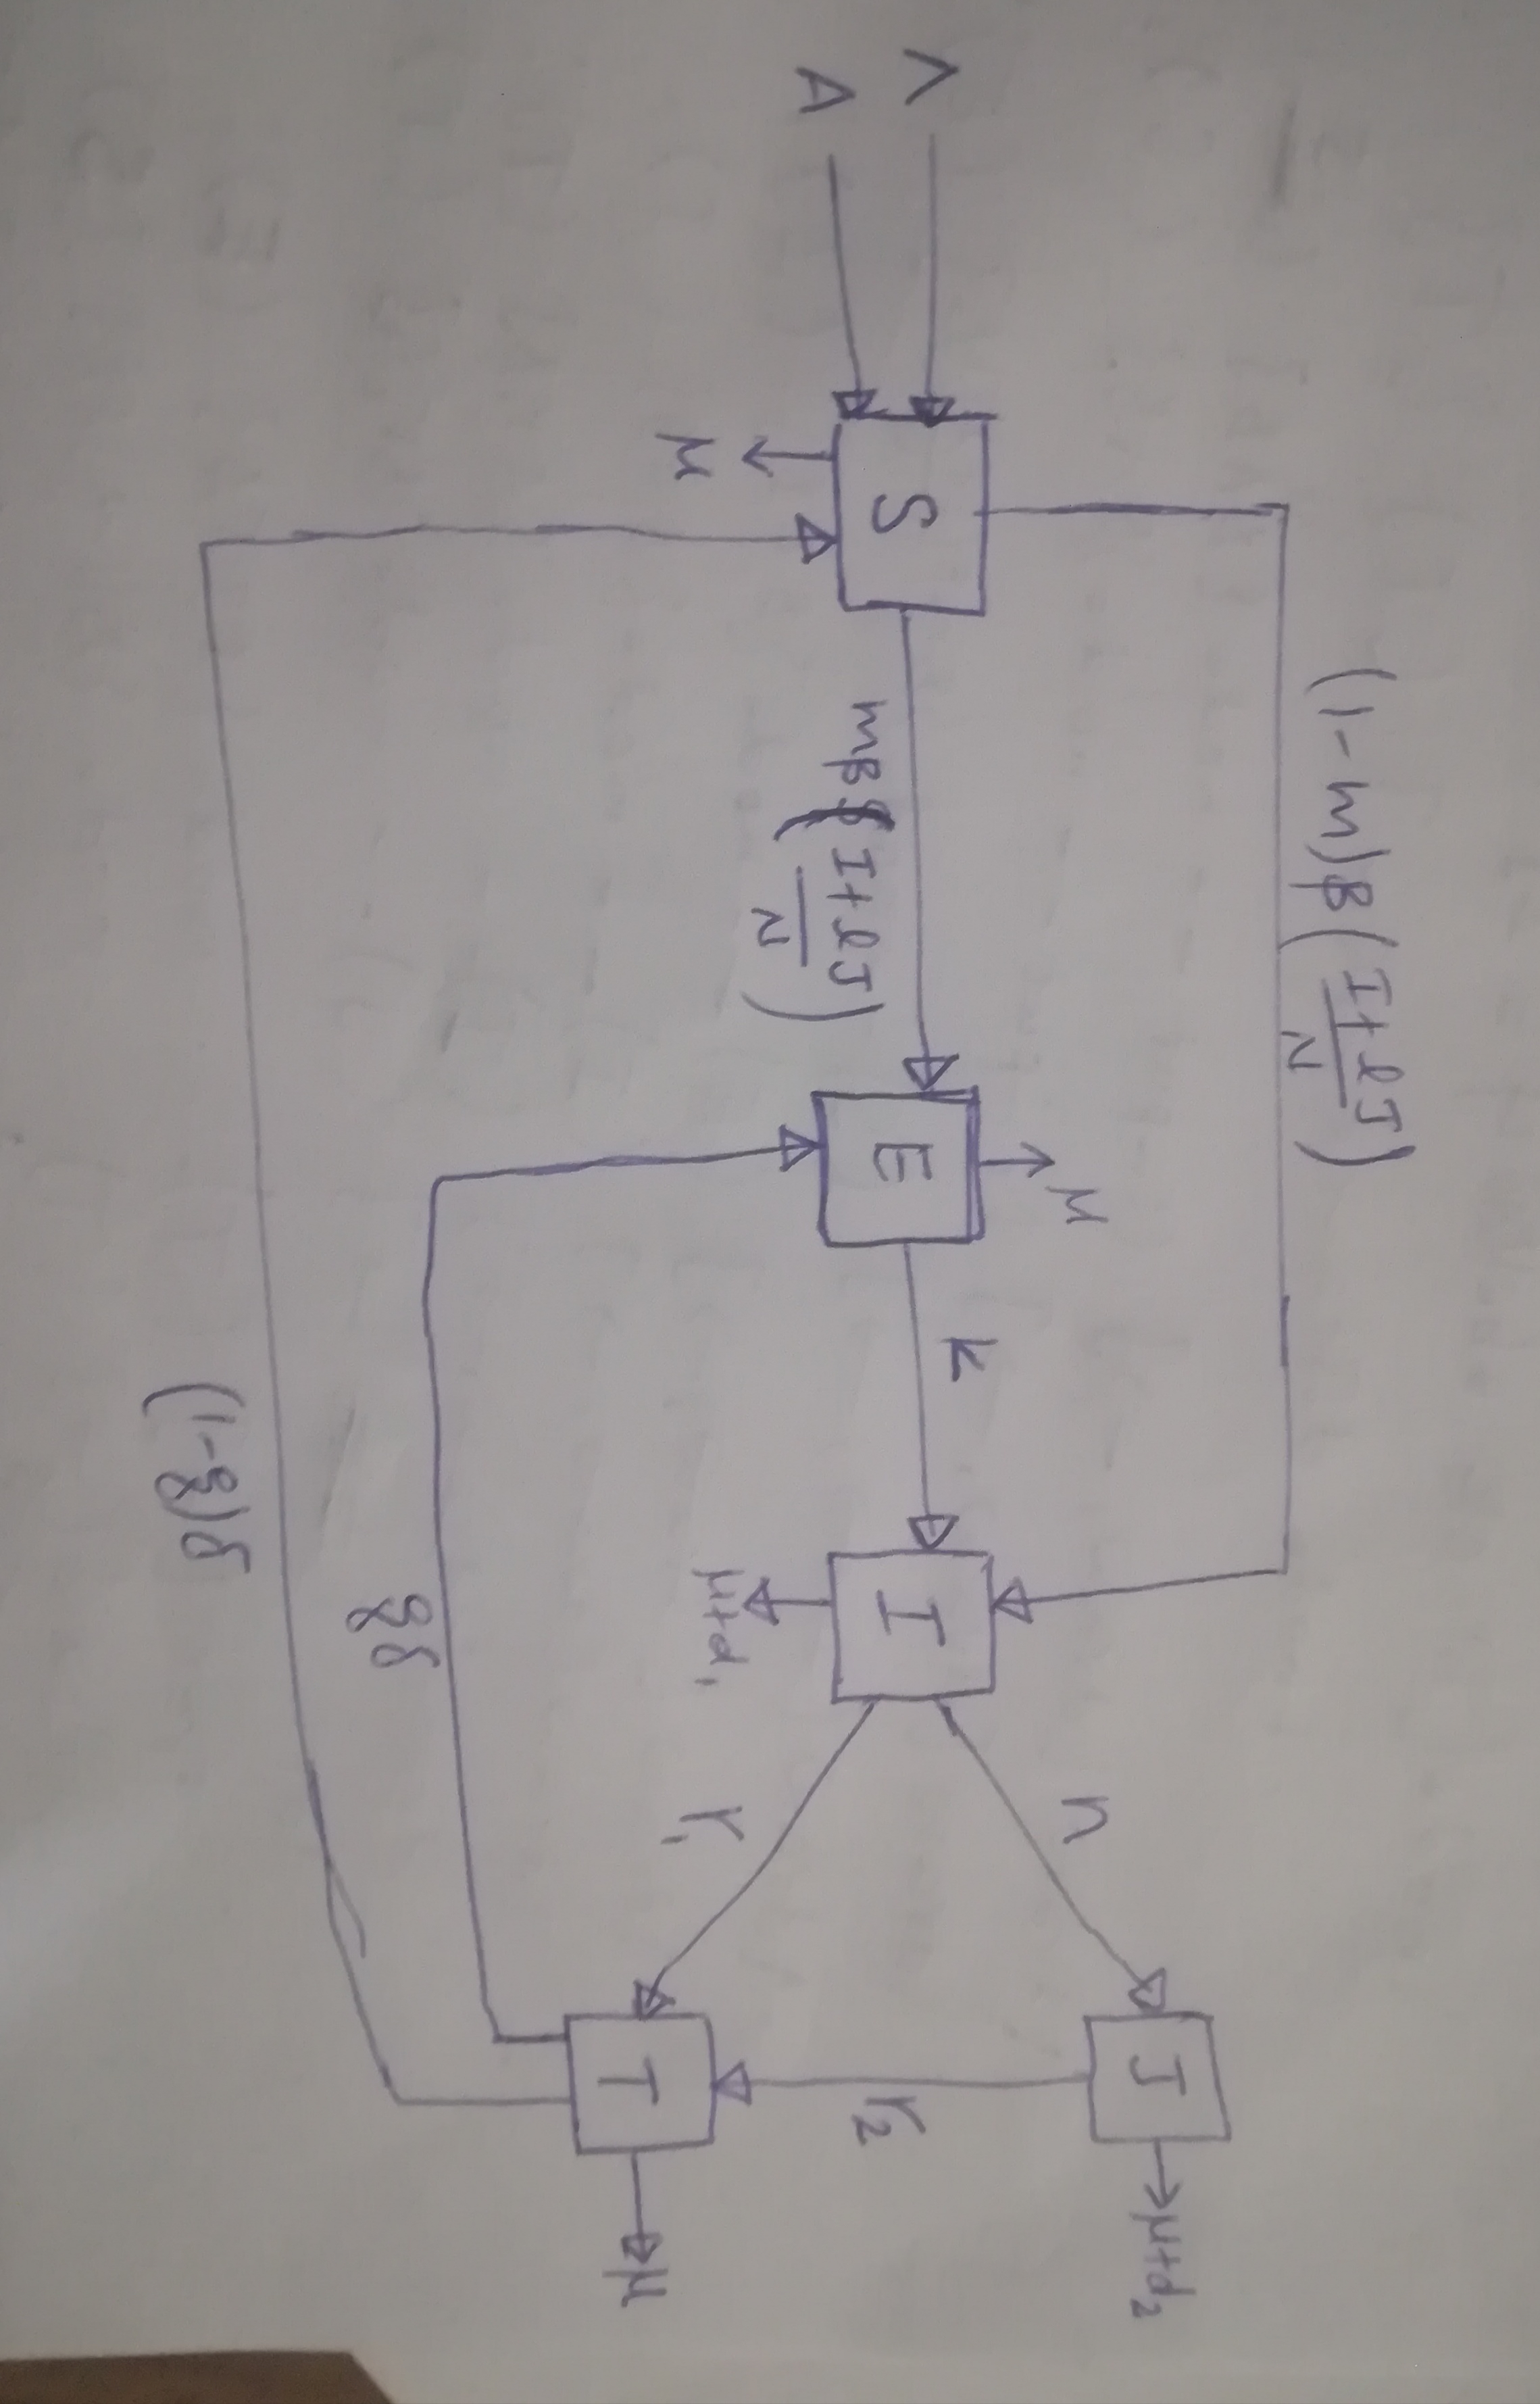 How To Draw The Following Schematic Diagram Using Tikz with regard to Draw Schema Diagram